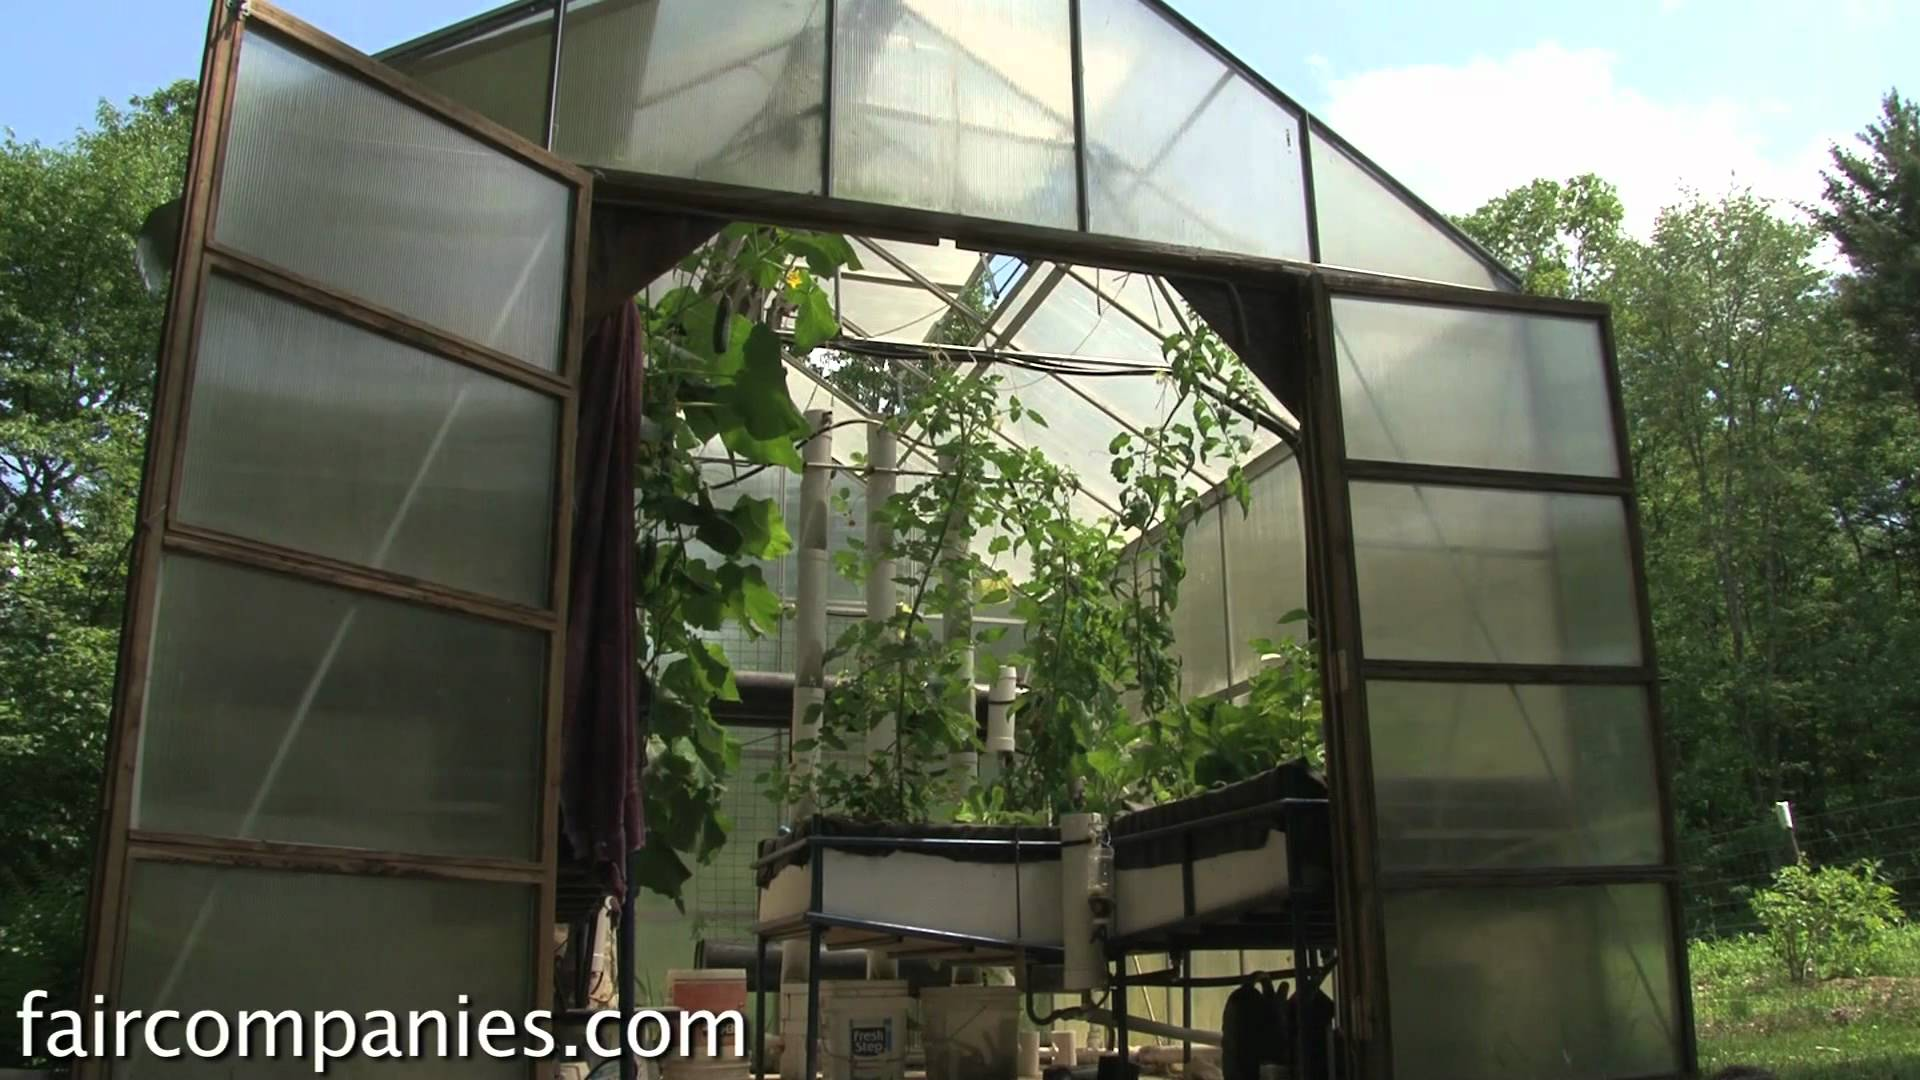 mosquito problem in backyard large and beautiful photos photo